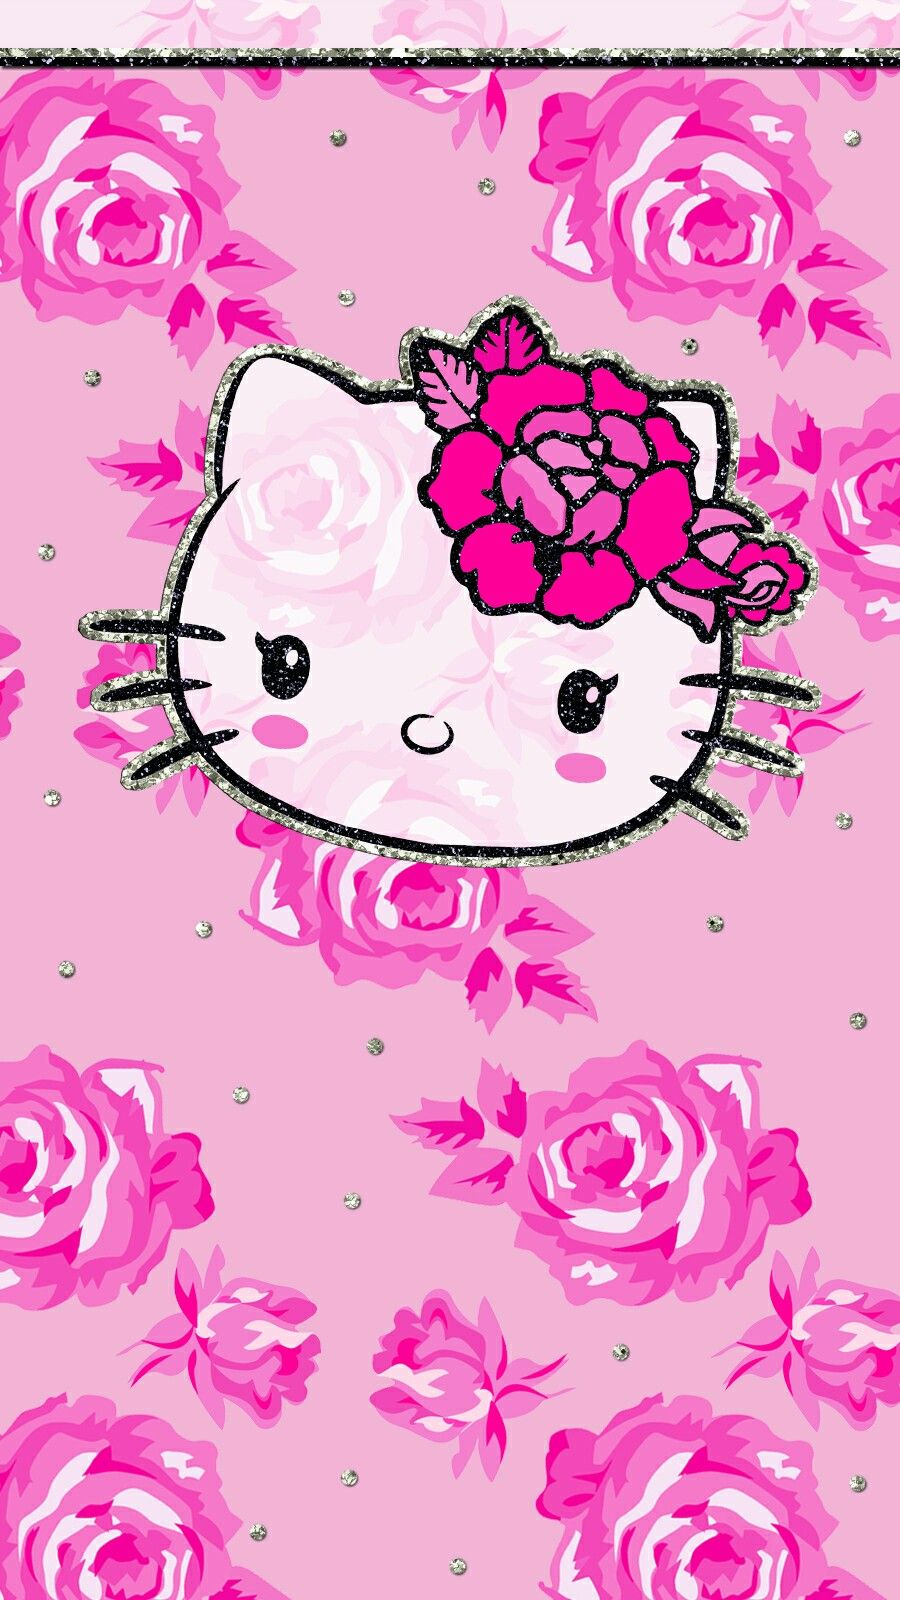 Download Wallpaper Hello Kitty Ipad - 2b88b5fedf6fbb976197793f0a1dfb83  Perfect Image Reference_996288.jpg